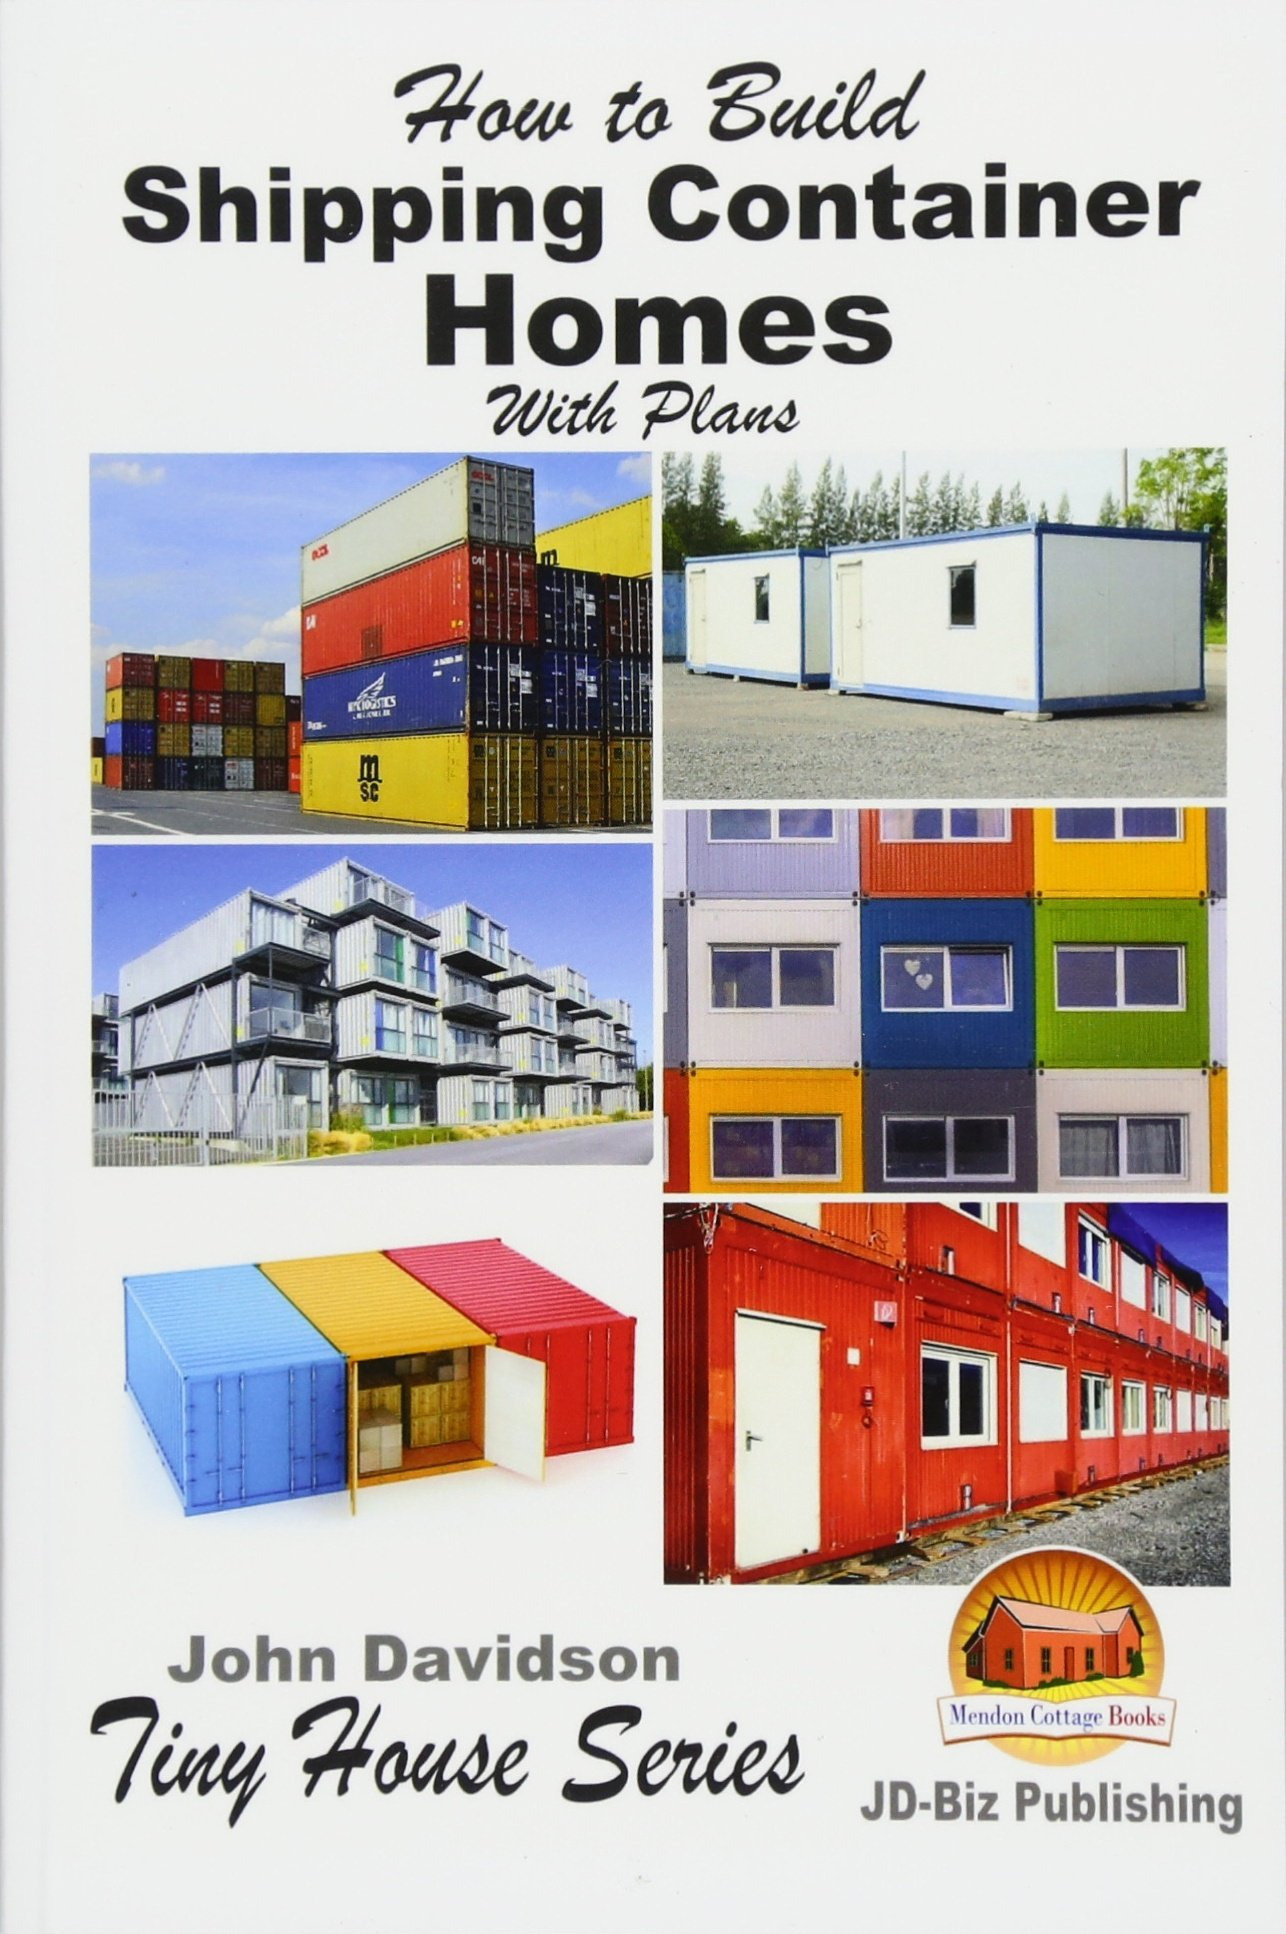 Shipping Container Housing Plans Luxury How to Build Shipping Container Homes with Plans Plan Book